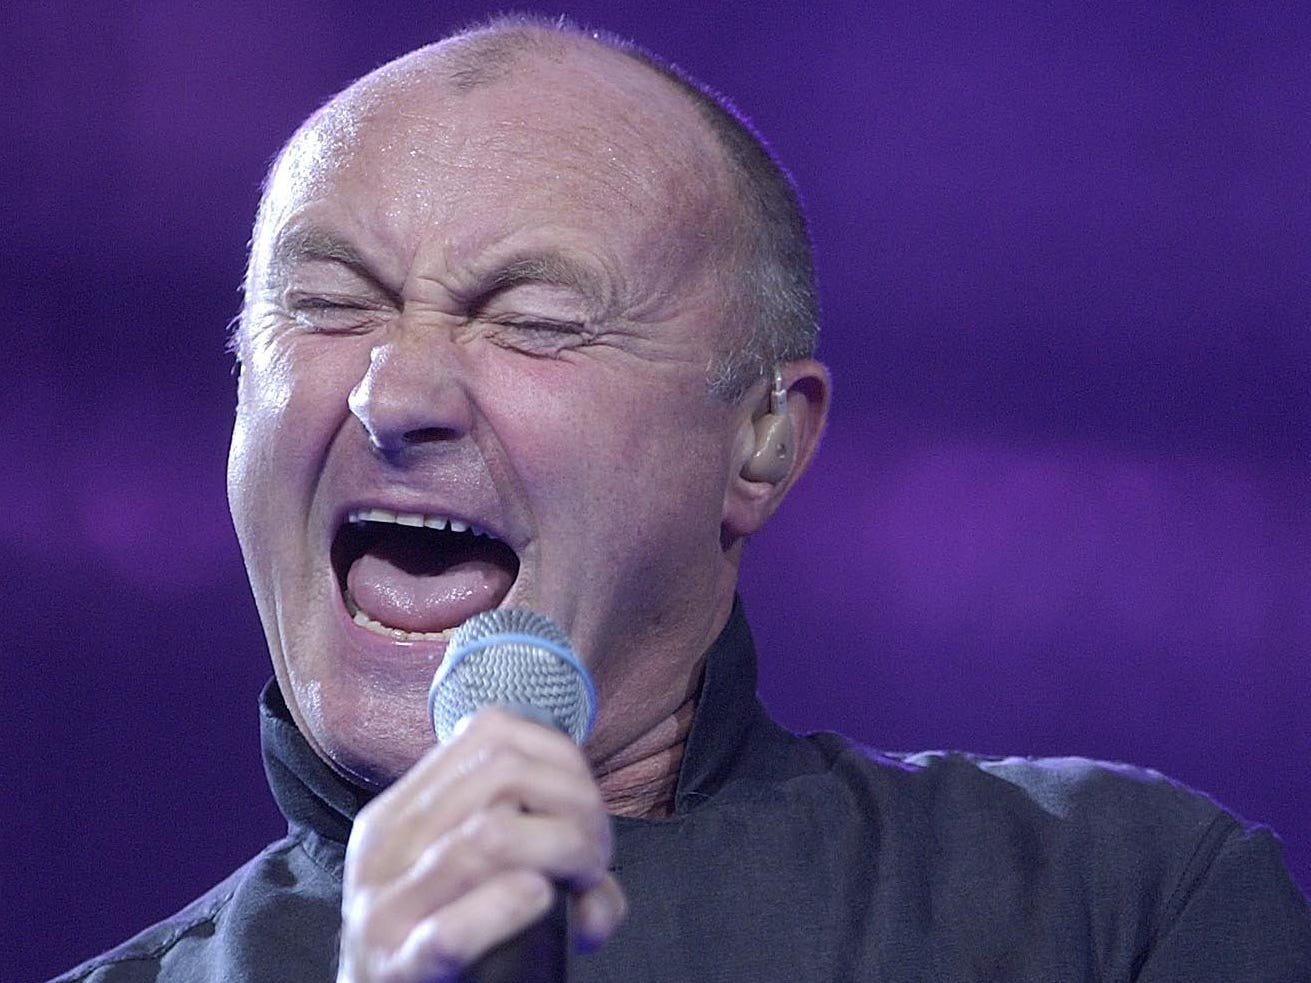 """Phil Collins performs """"Against All Odds"""" during his concert at the Bradley Center on Tuesday, September 7, 2004, part of his First Final Farewell Tour. Collins returned to touring (with Milwaukee native Daryl Stuermer on guitar) in 2017, but has yet to come back to Milwaukee."""